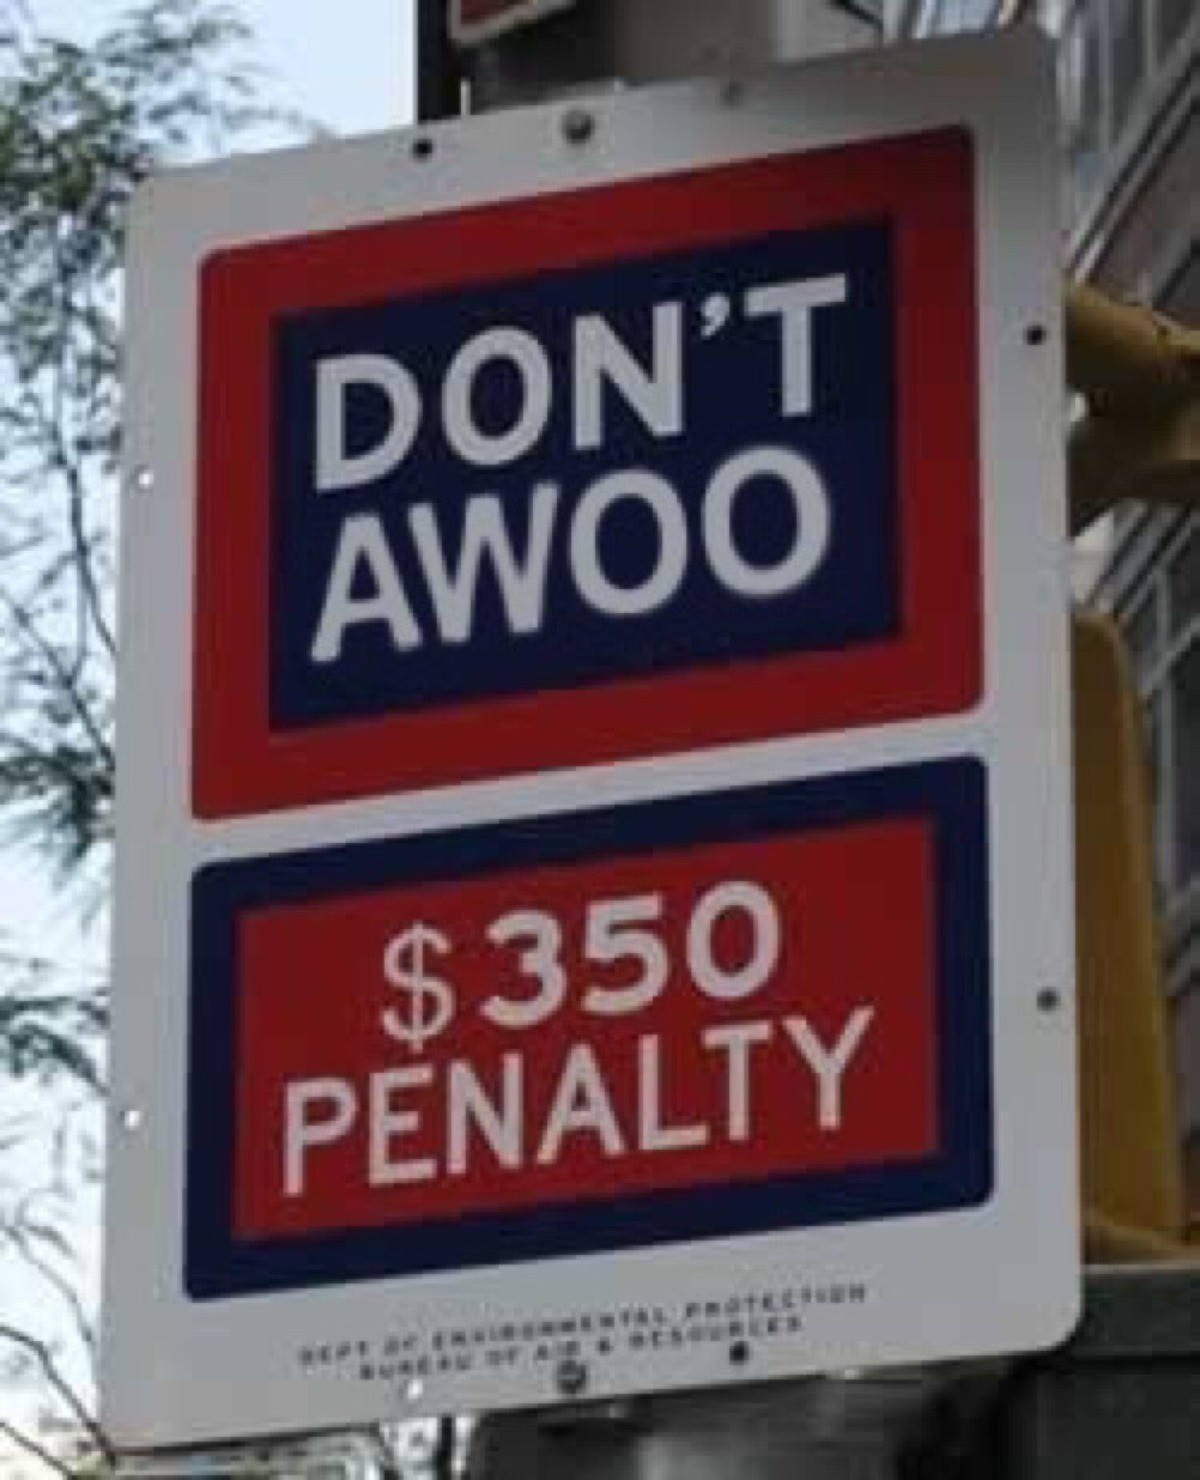 Laws Enforced by K9 Units. .. >like you can stop me I'll post all my freshest bakes and make eljimbo sad.....and I don't wanna do that, OP